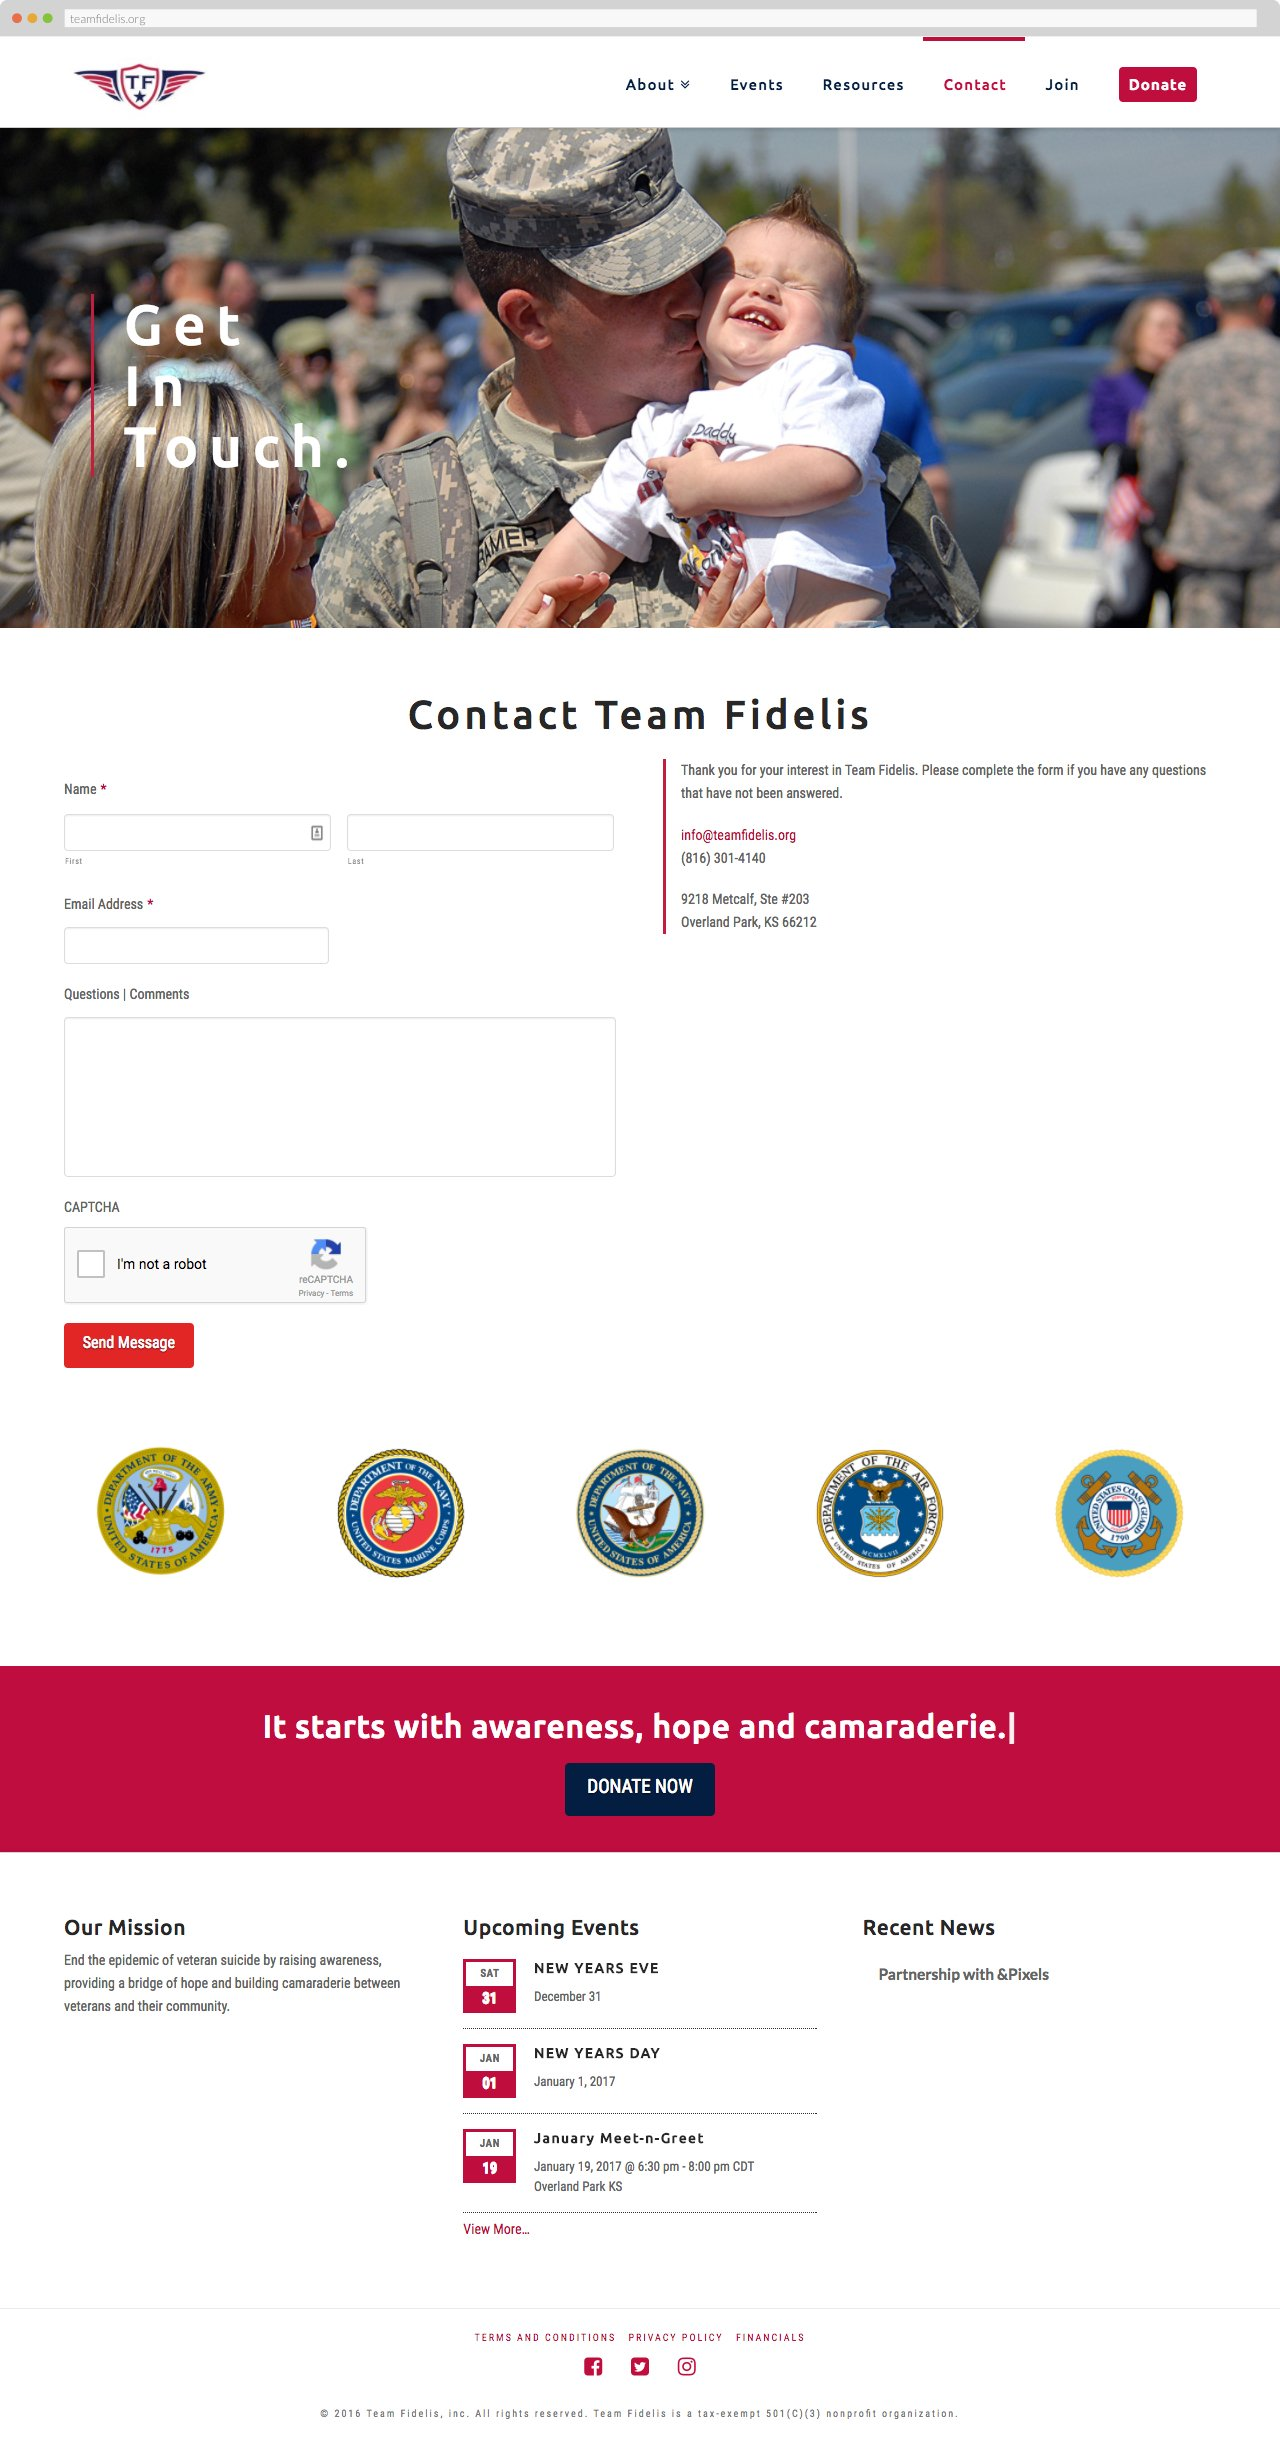 Team Fidelis - Contact Us